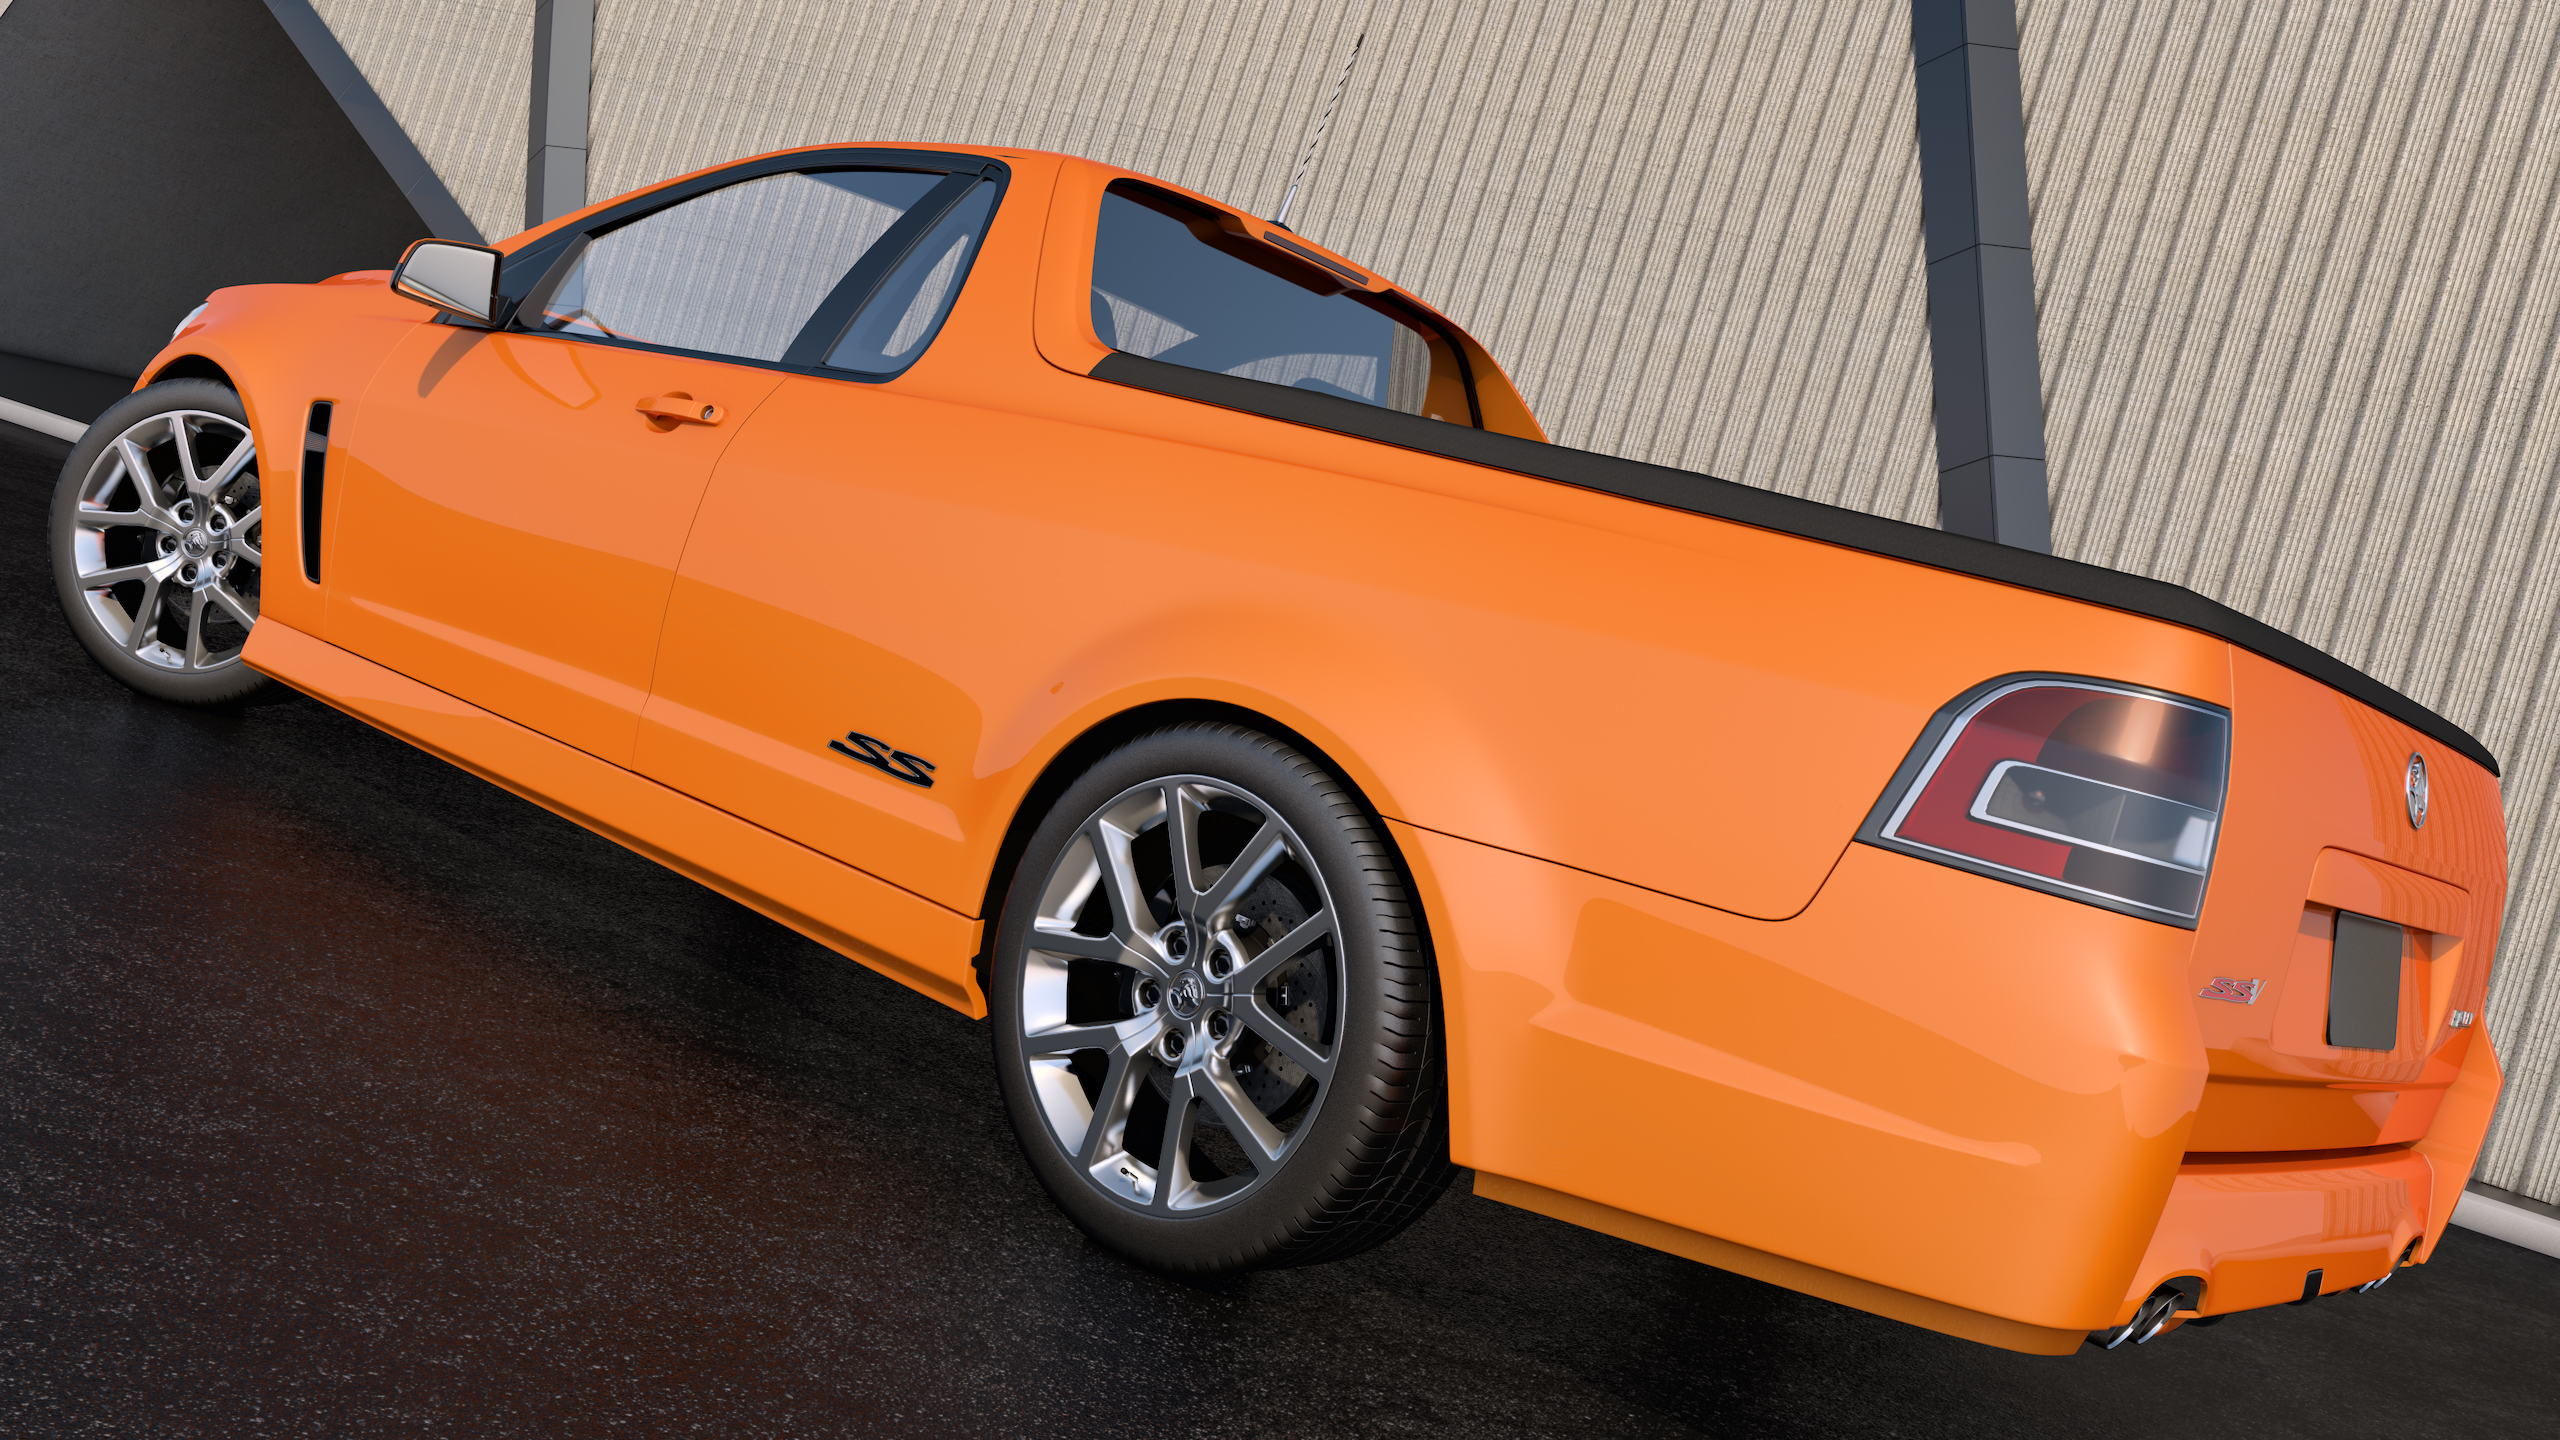 2014 holden vf commodore ute ssv by samcurry on deviantart 2014 holden vf commodore ute ssv by samcurry vanachro Image collections